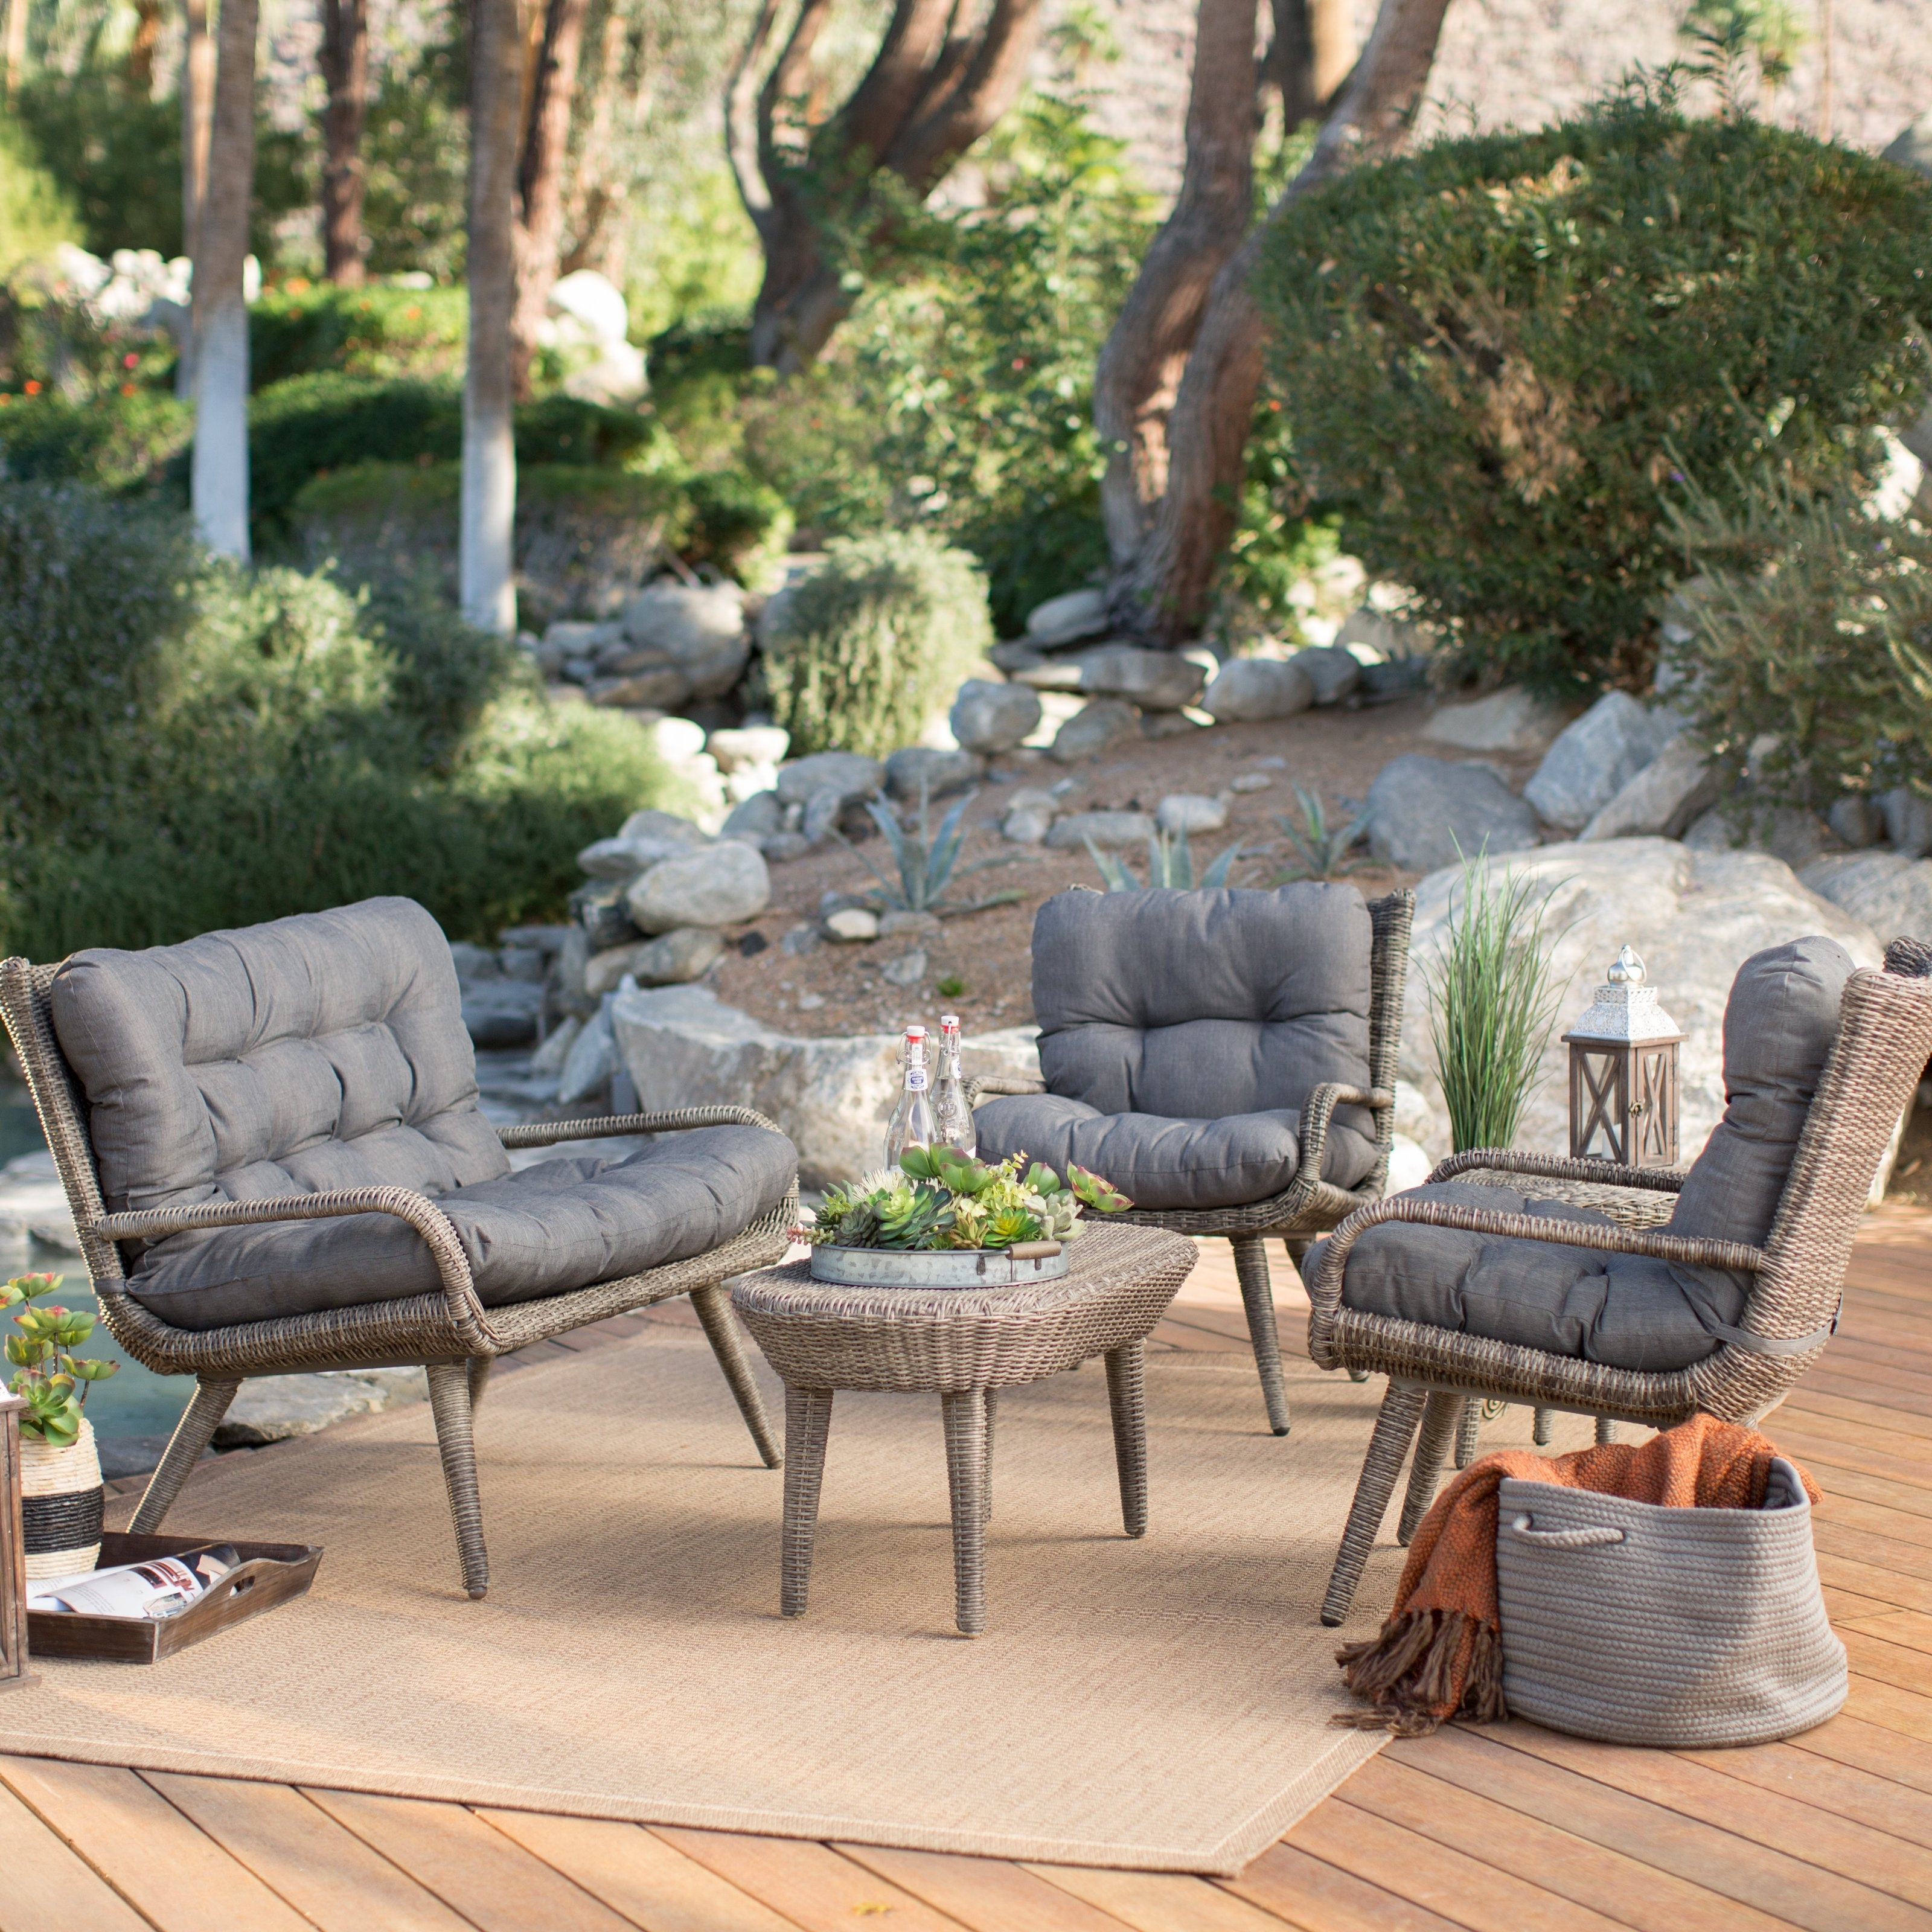 Most Recent Furniture: Exciting Outdoor Furniture With Gray Cushions On Beige Throughout Grey Patio Conversation Sets (View 14 of 15)